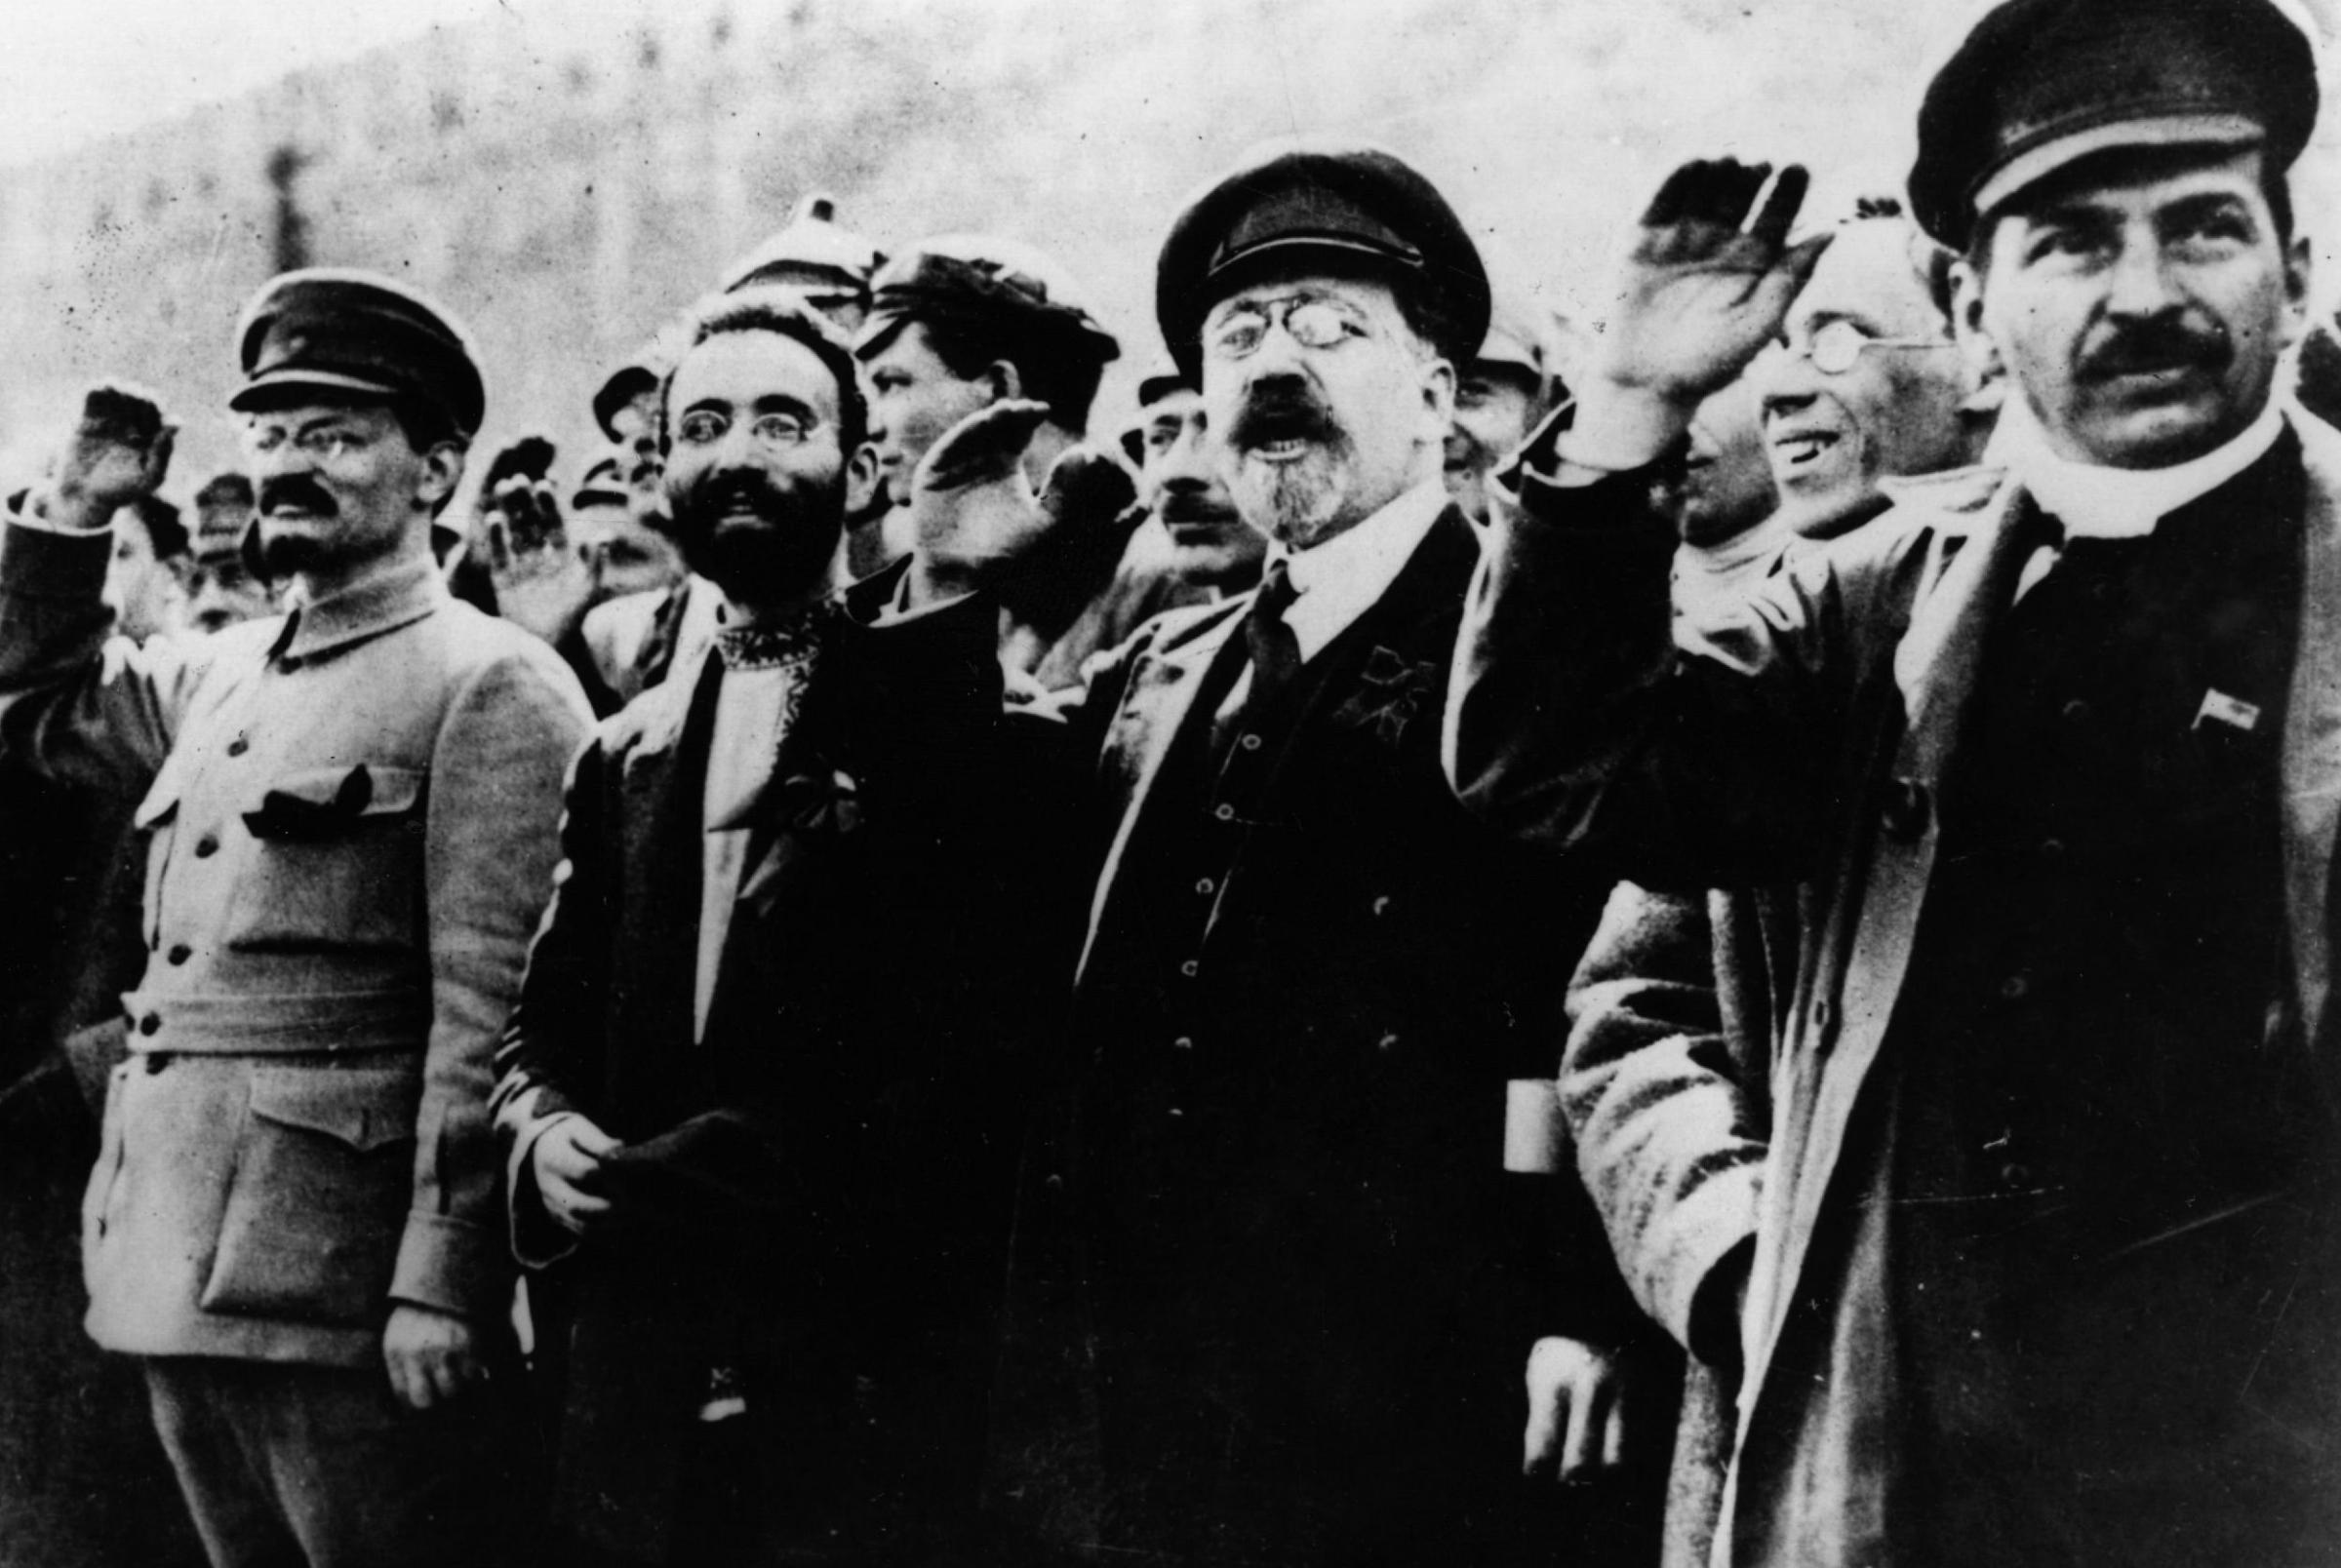 Stalin and Trotsky salute in the street during the Russian Revolution